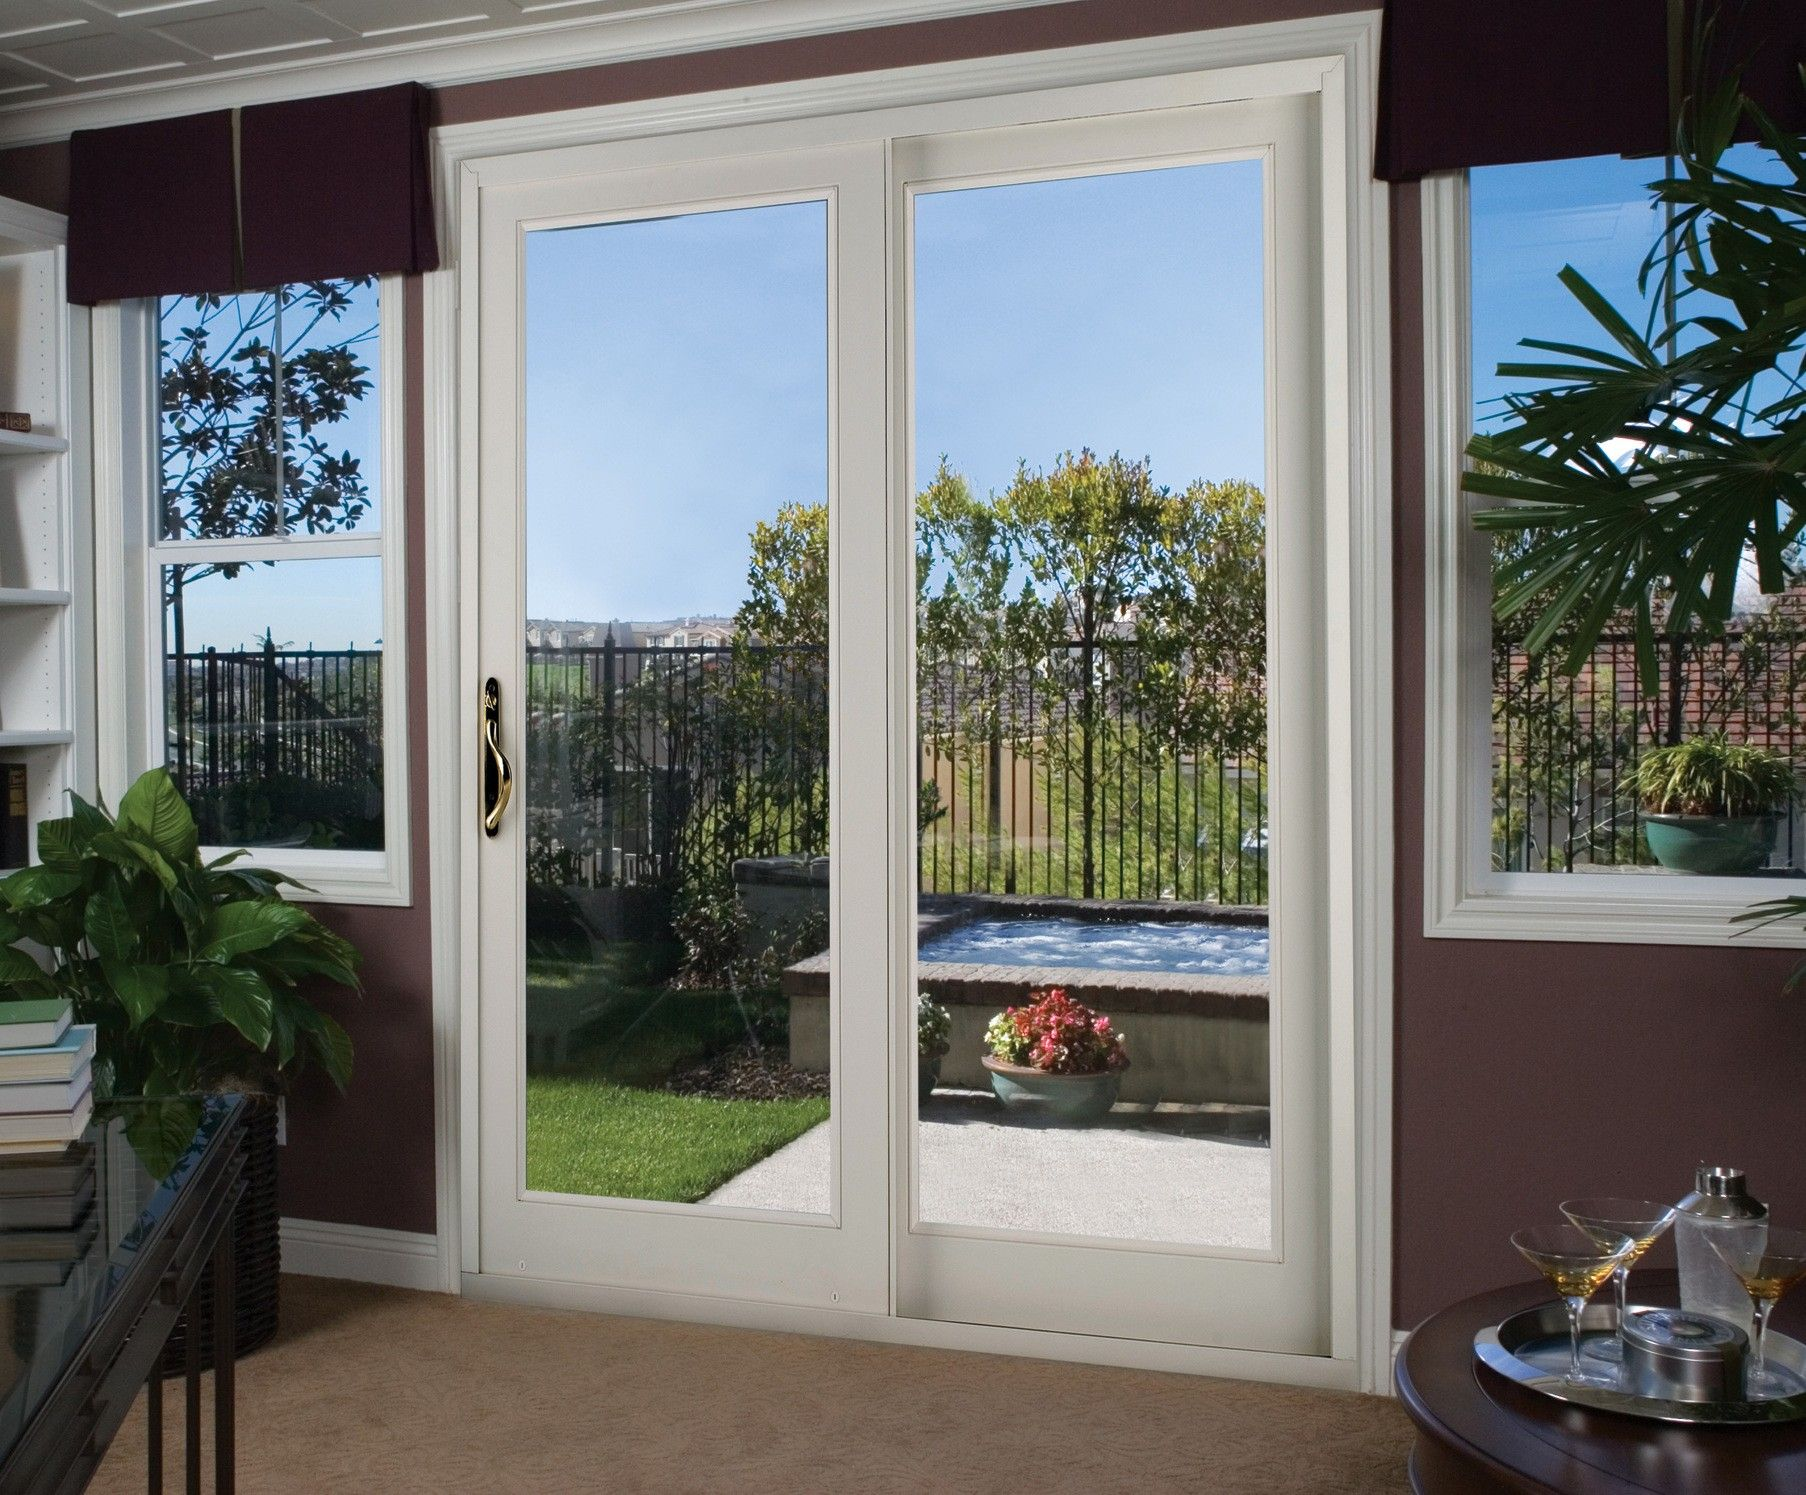 Interior Sliding Patio Door With Mirrored Glass Blinds Blinds For Patio Doors Sliding Patio Doors Patio Doors Modern Patio Doors